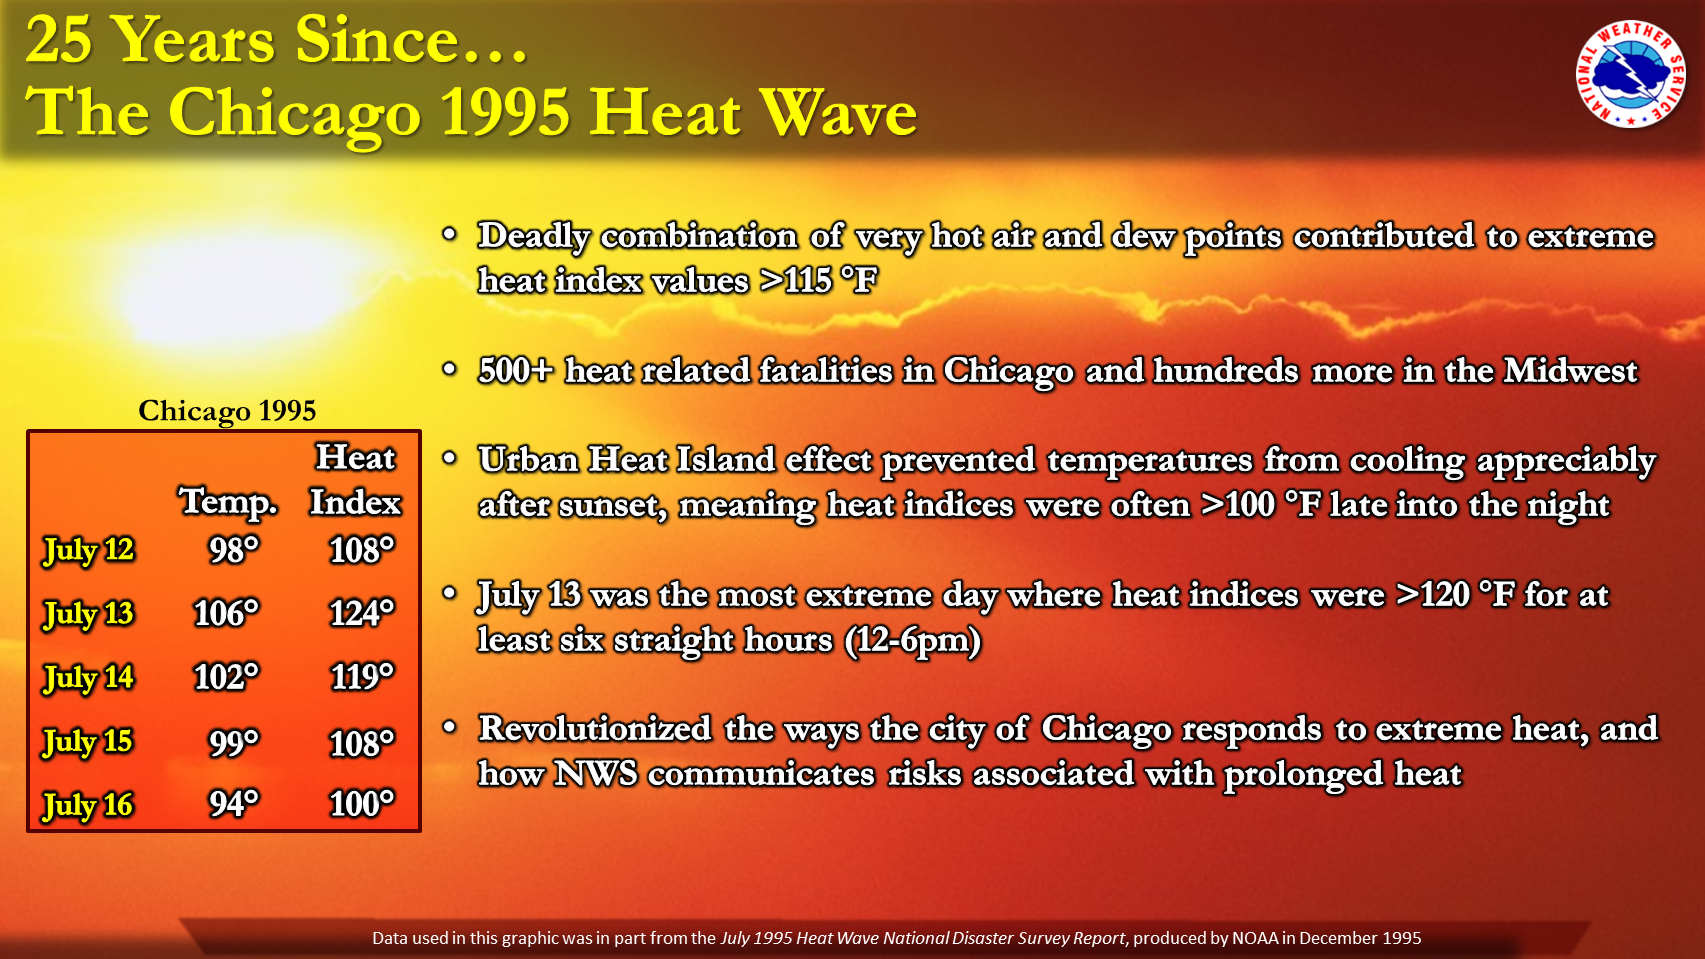 Statistics from 1995 Chicago Heat Wave